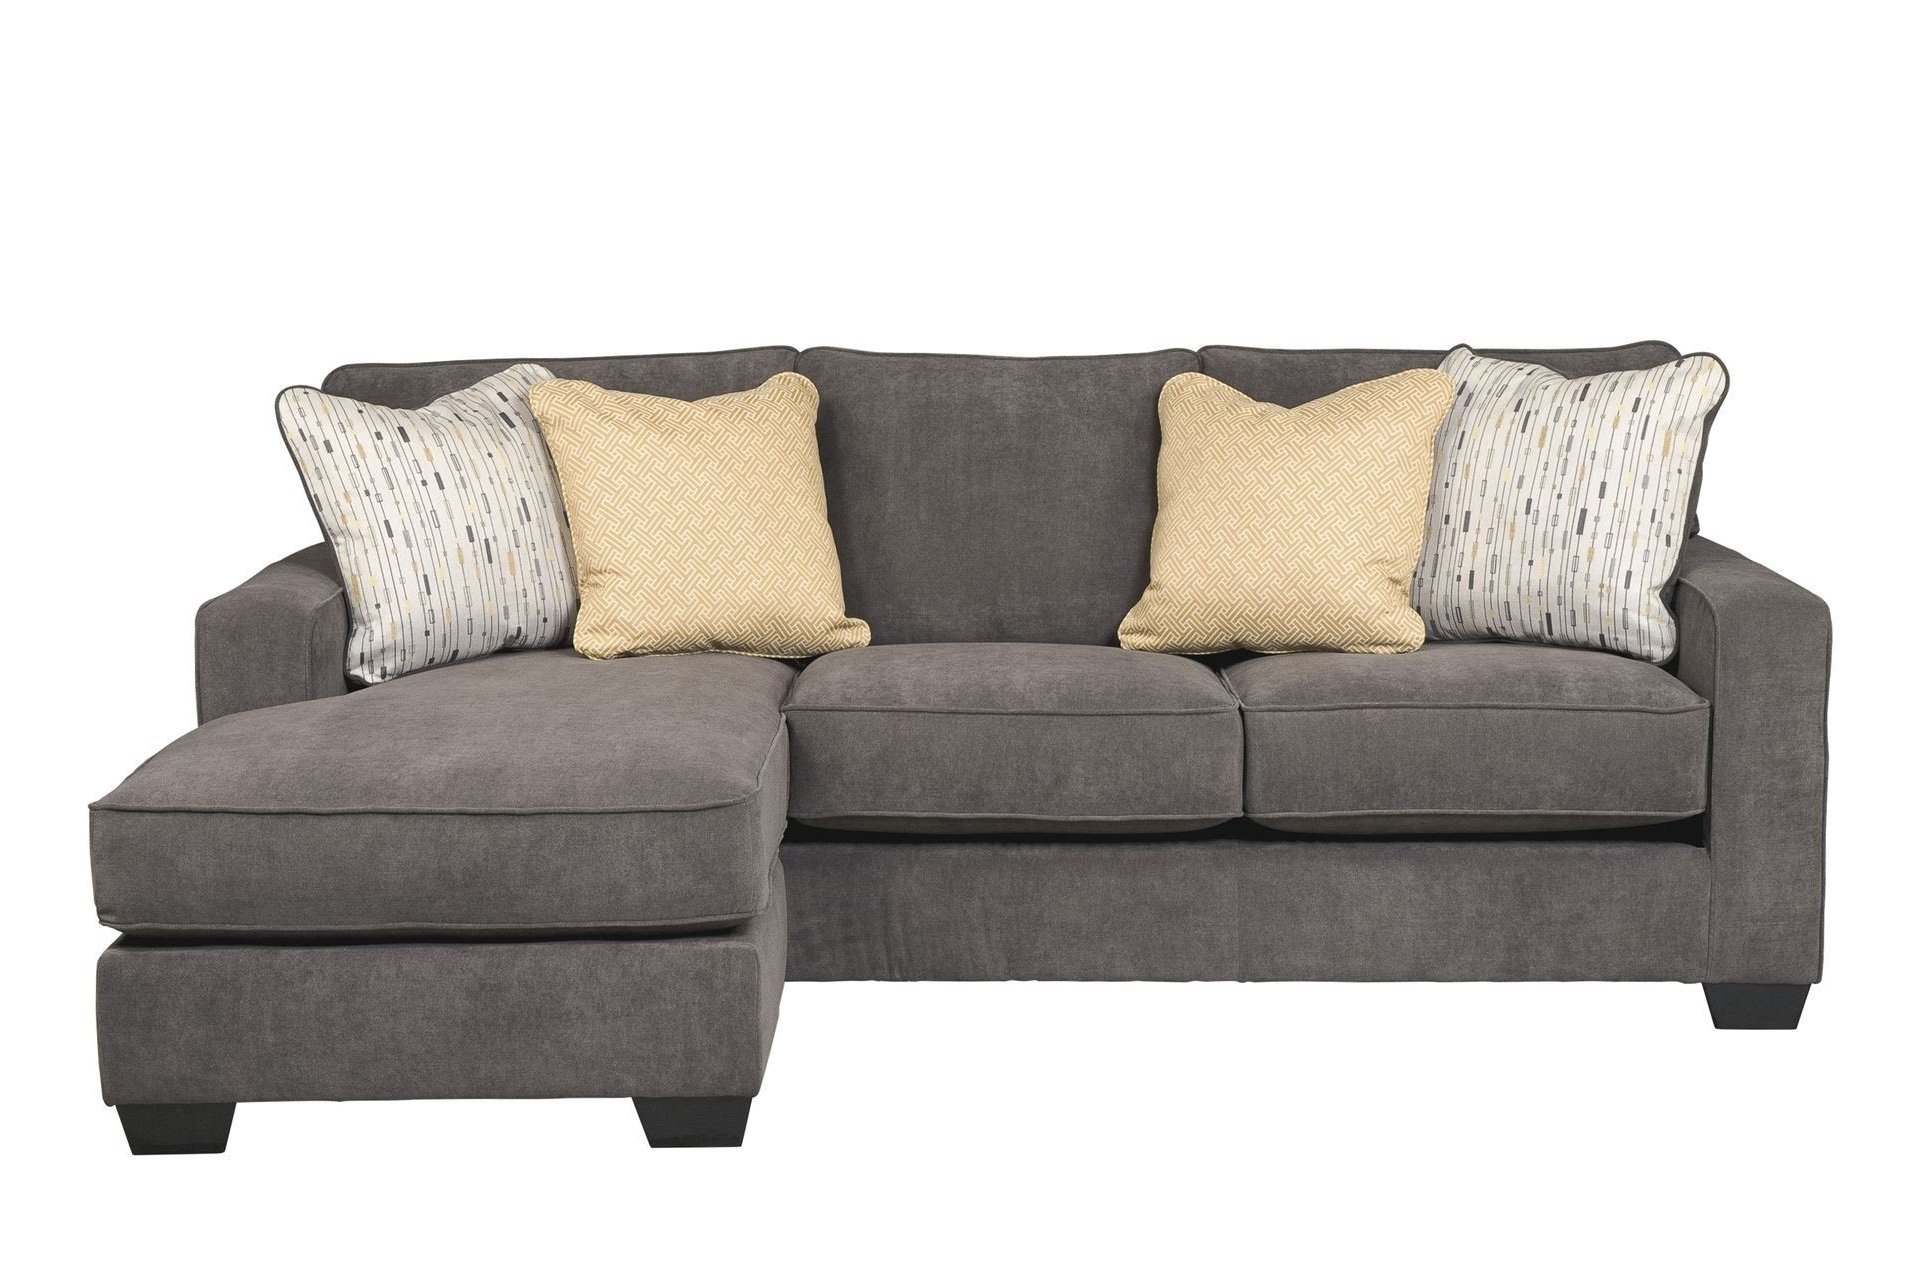 Interesting Couch With Chaise Lounge Ideas – Youtube Inside Well Known Grey Sofas With Chaise (View 2 of 15)